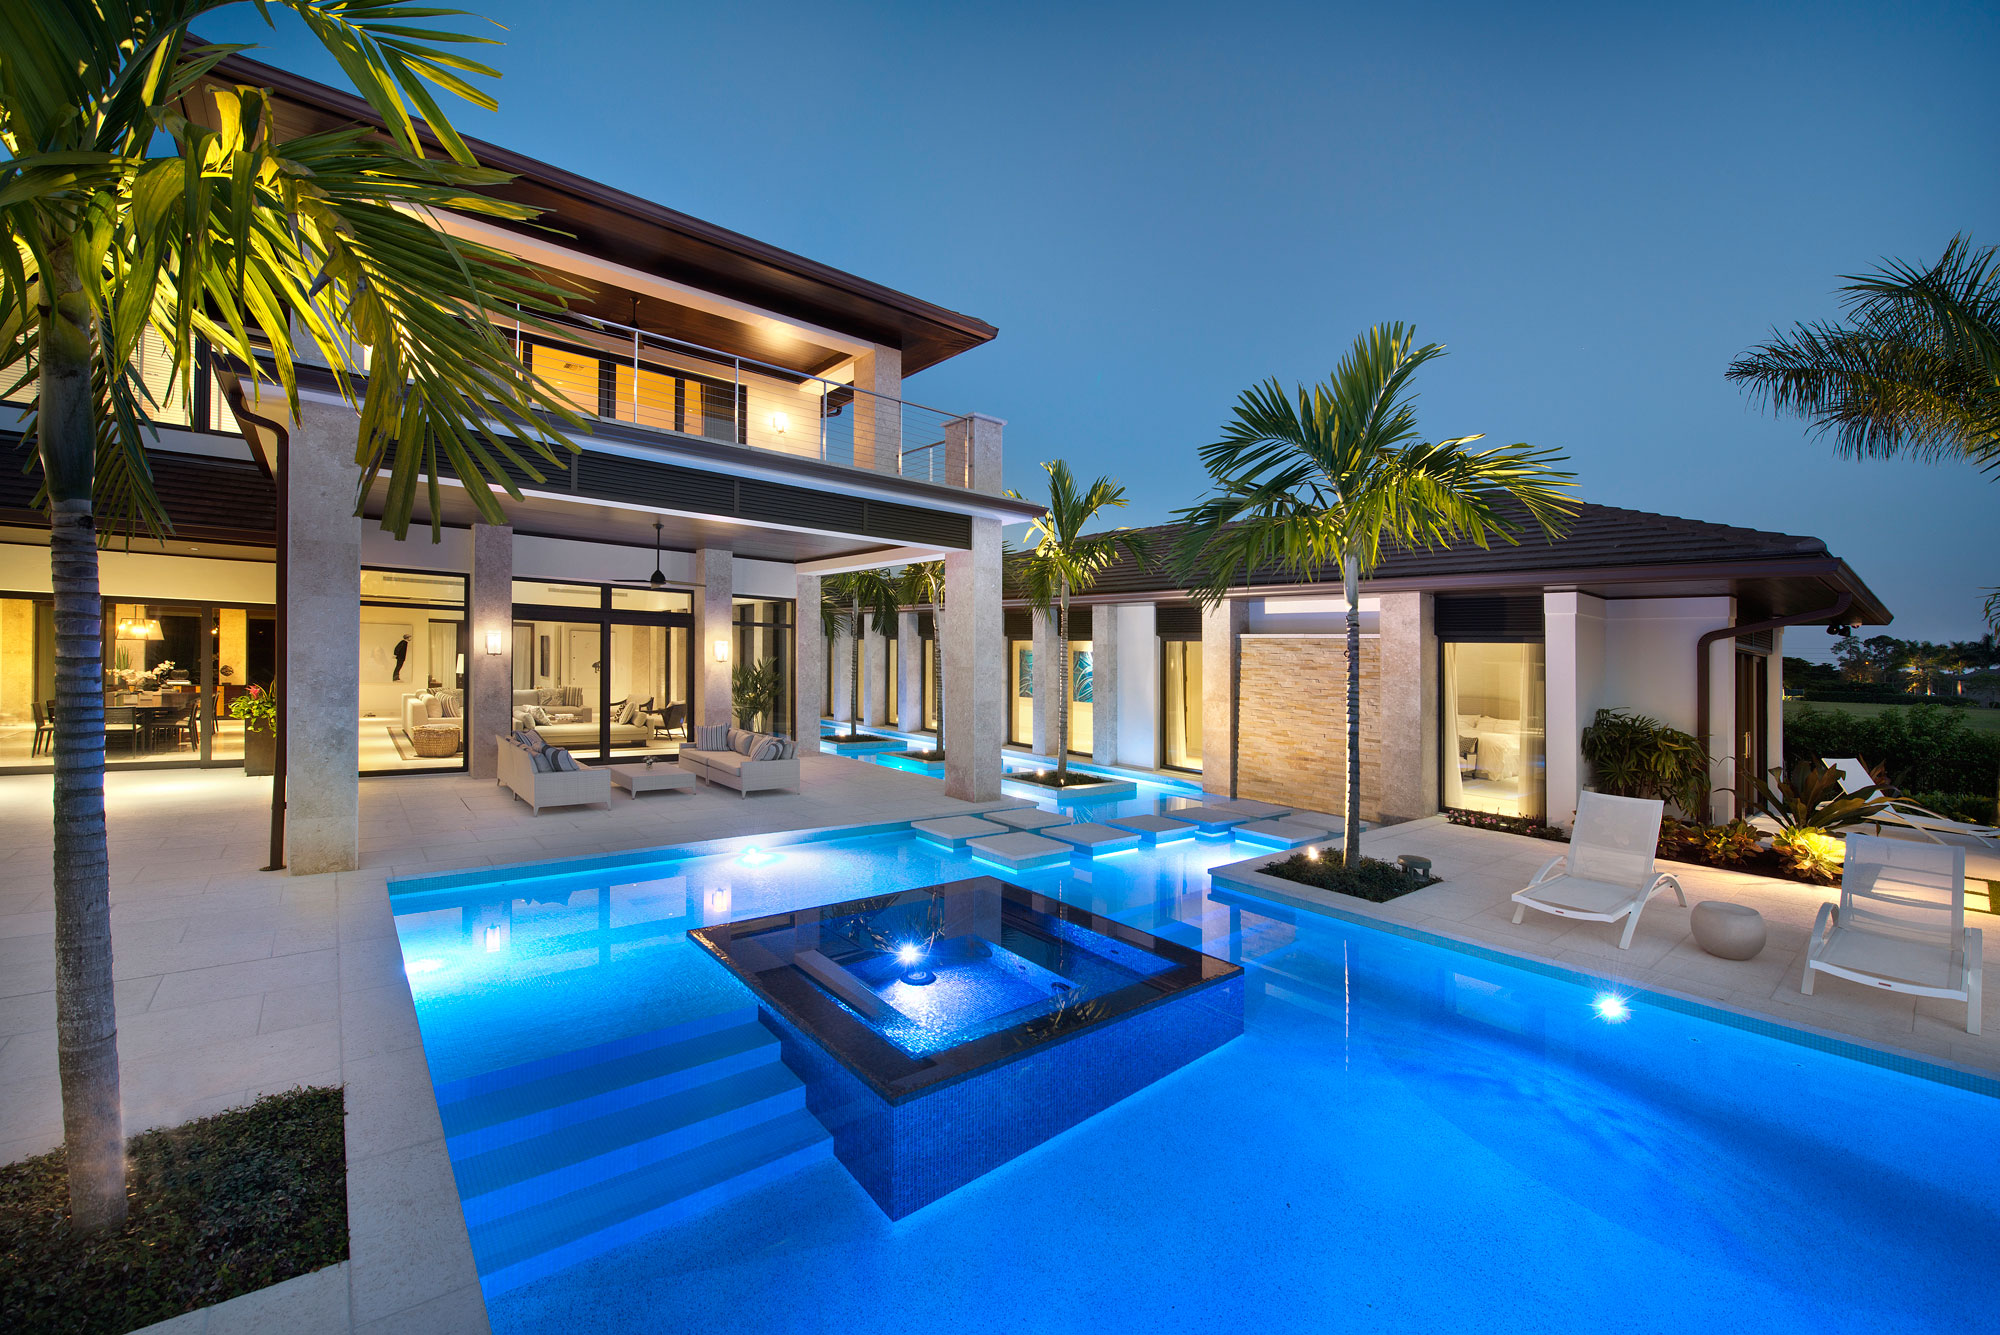 Exquisite private home in florida by harwick homes for My luxury home